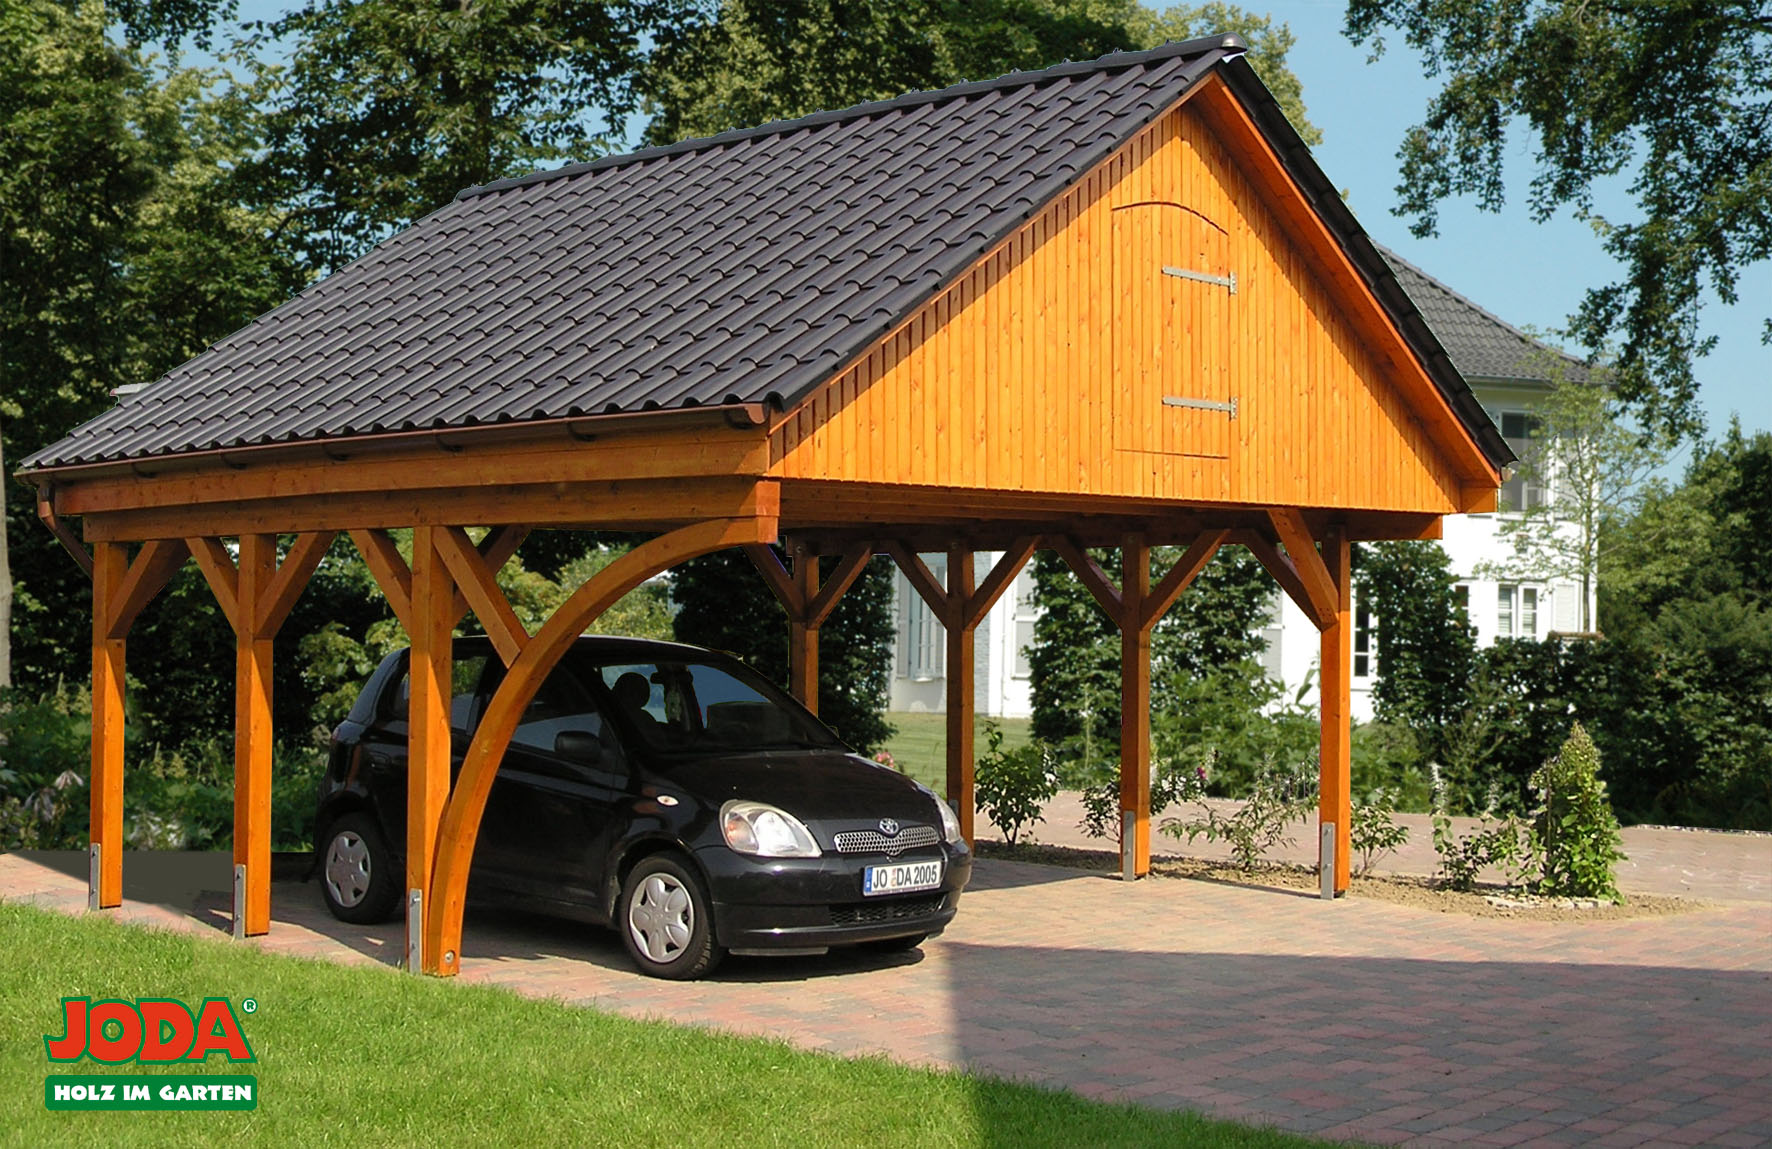 Joda carport konfigurator for Joda carport